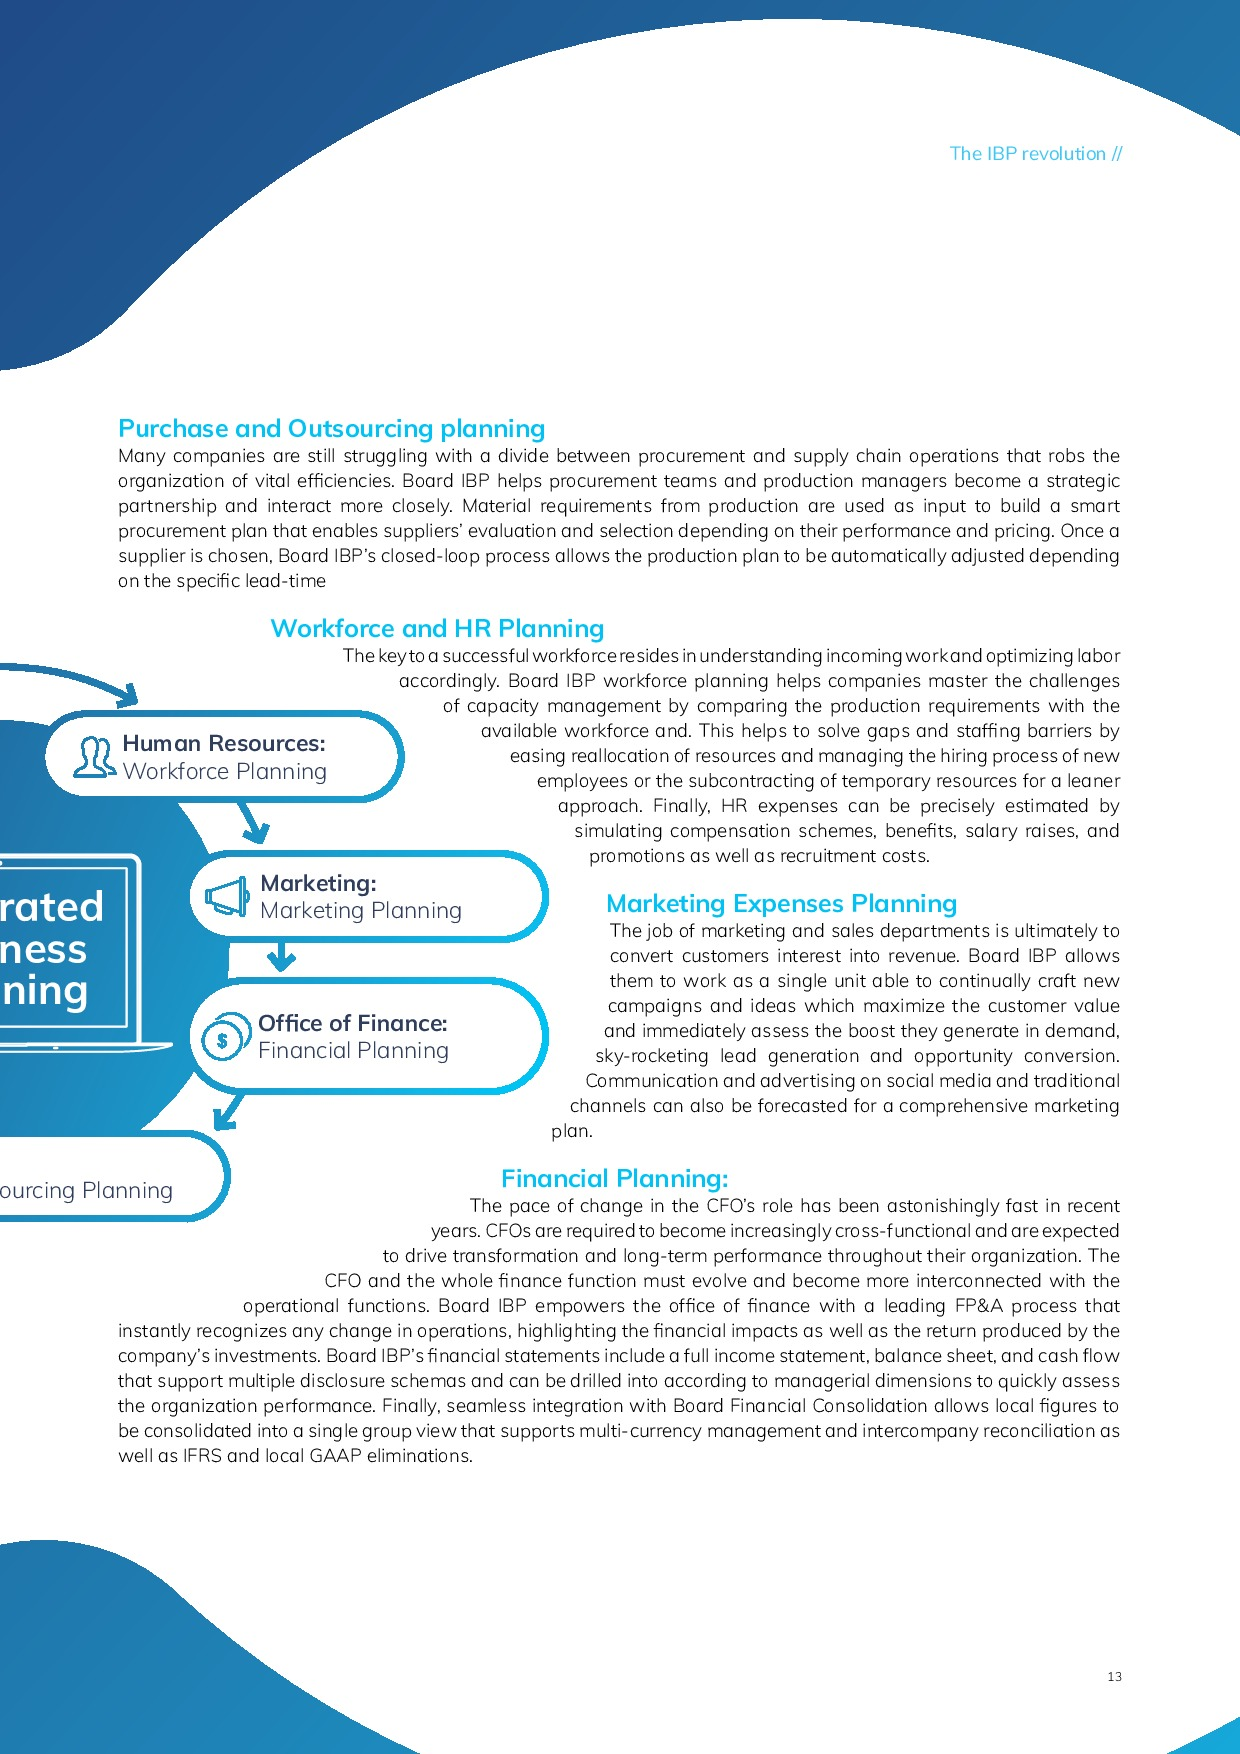 Taking an Integrated Approach to Business Planning | Page 13